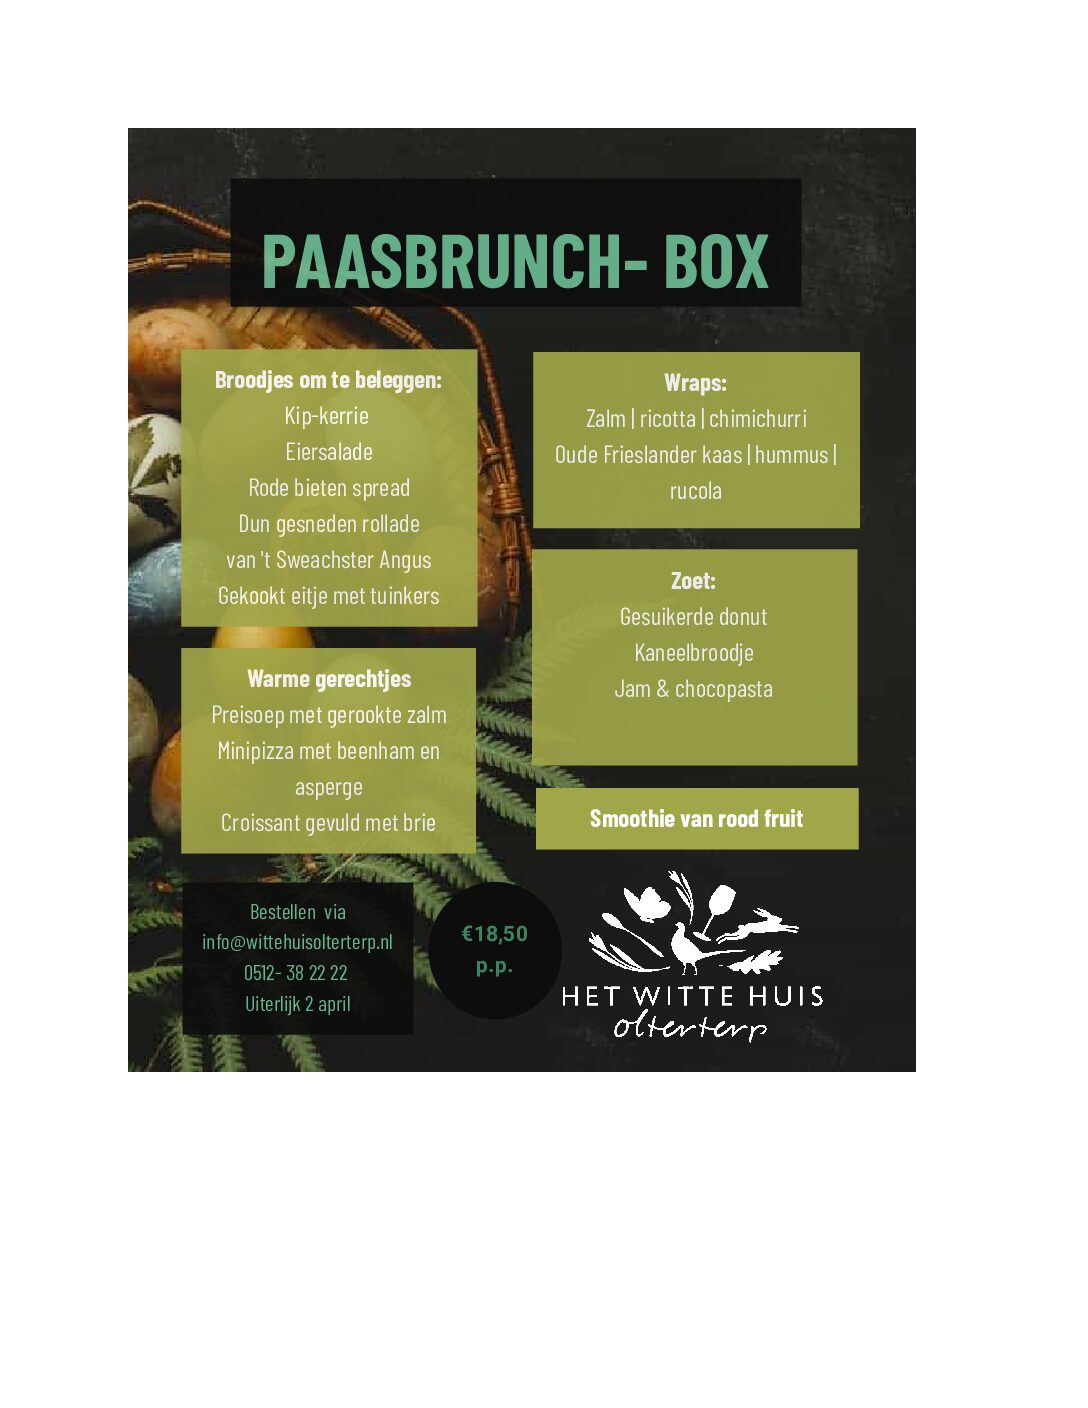 Paasbrunch-box